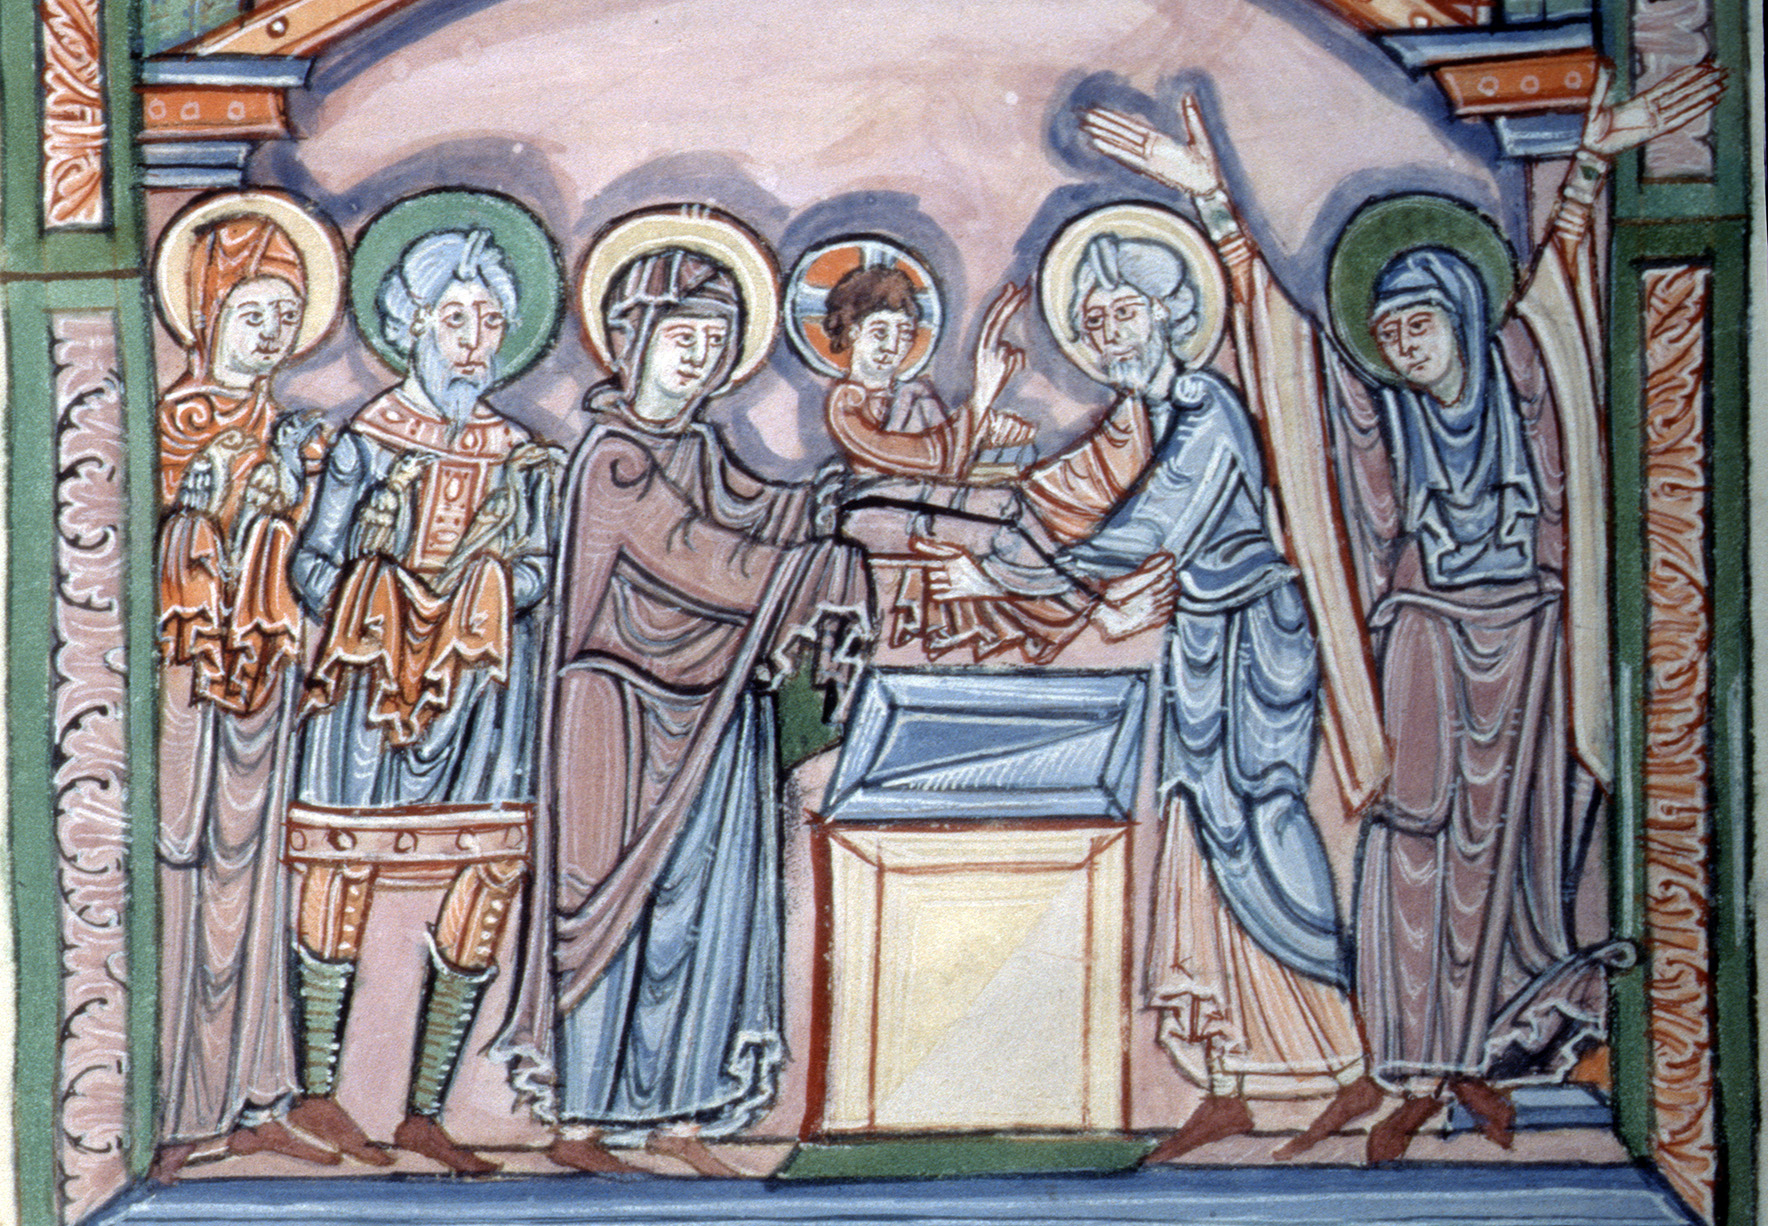 Figure 2. Presentation scene in the Mont-Saint-Michel Sacramentary (Normandy, 1050-1065). New York, Morgan Library, M.641, fol. 18r.